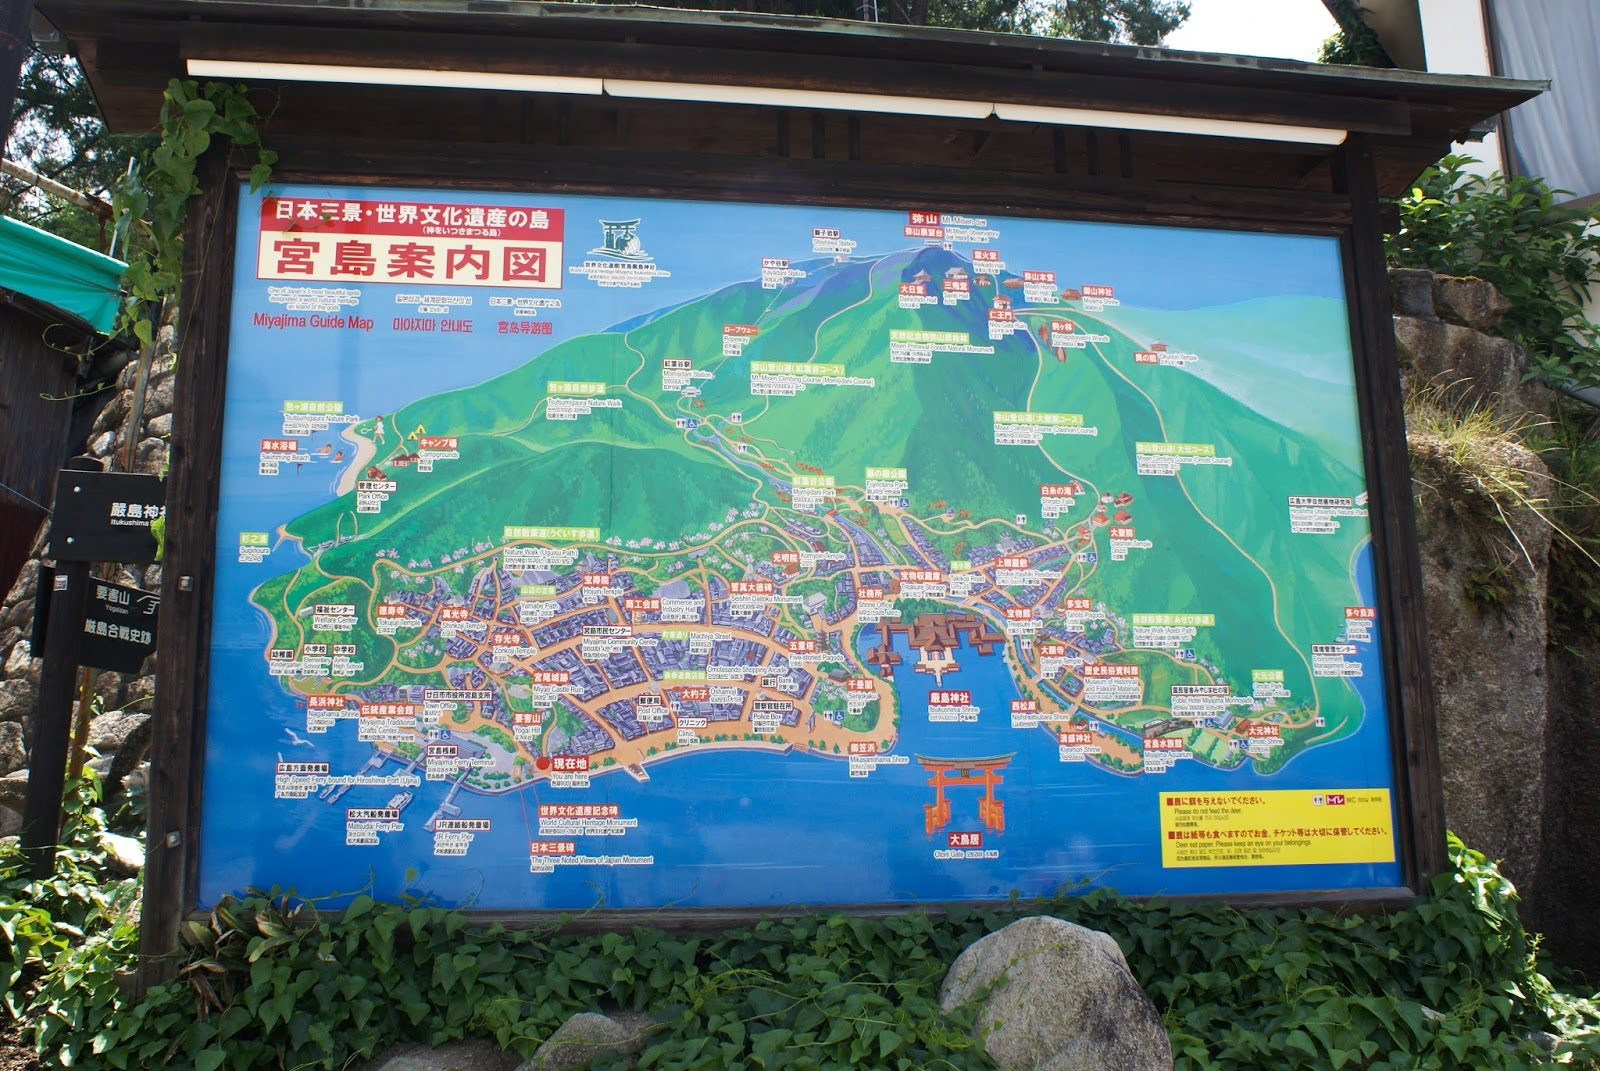 miyajima itsukushima japan guide map